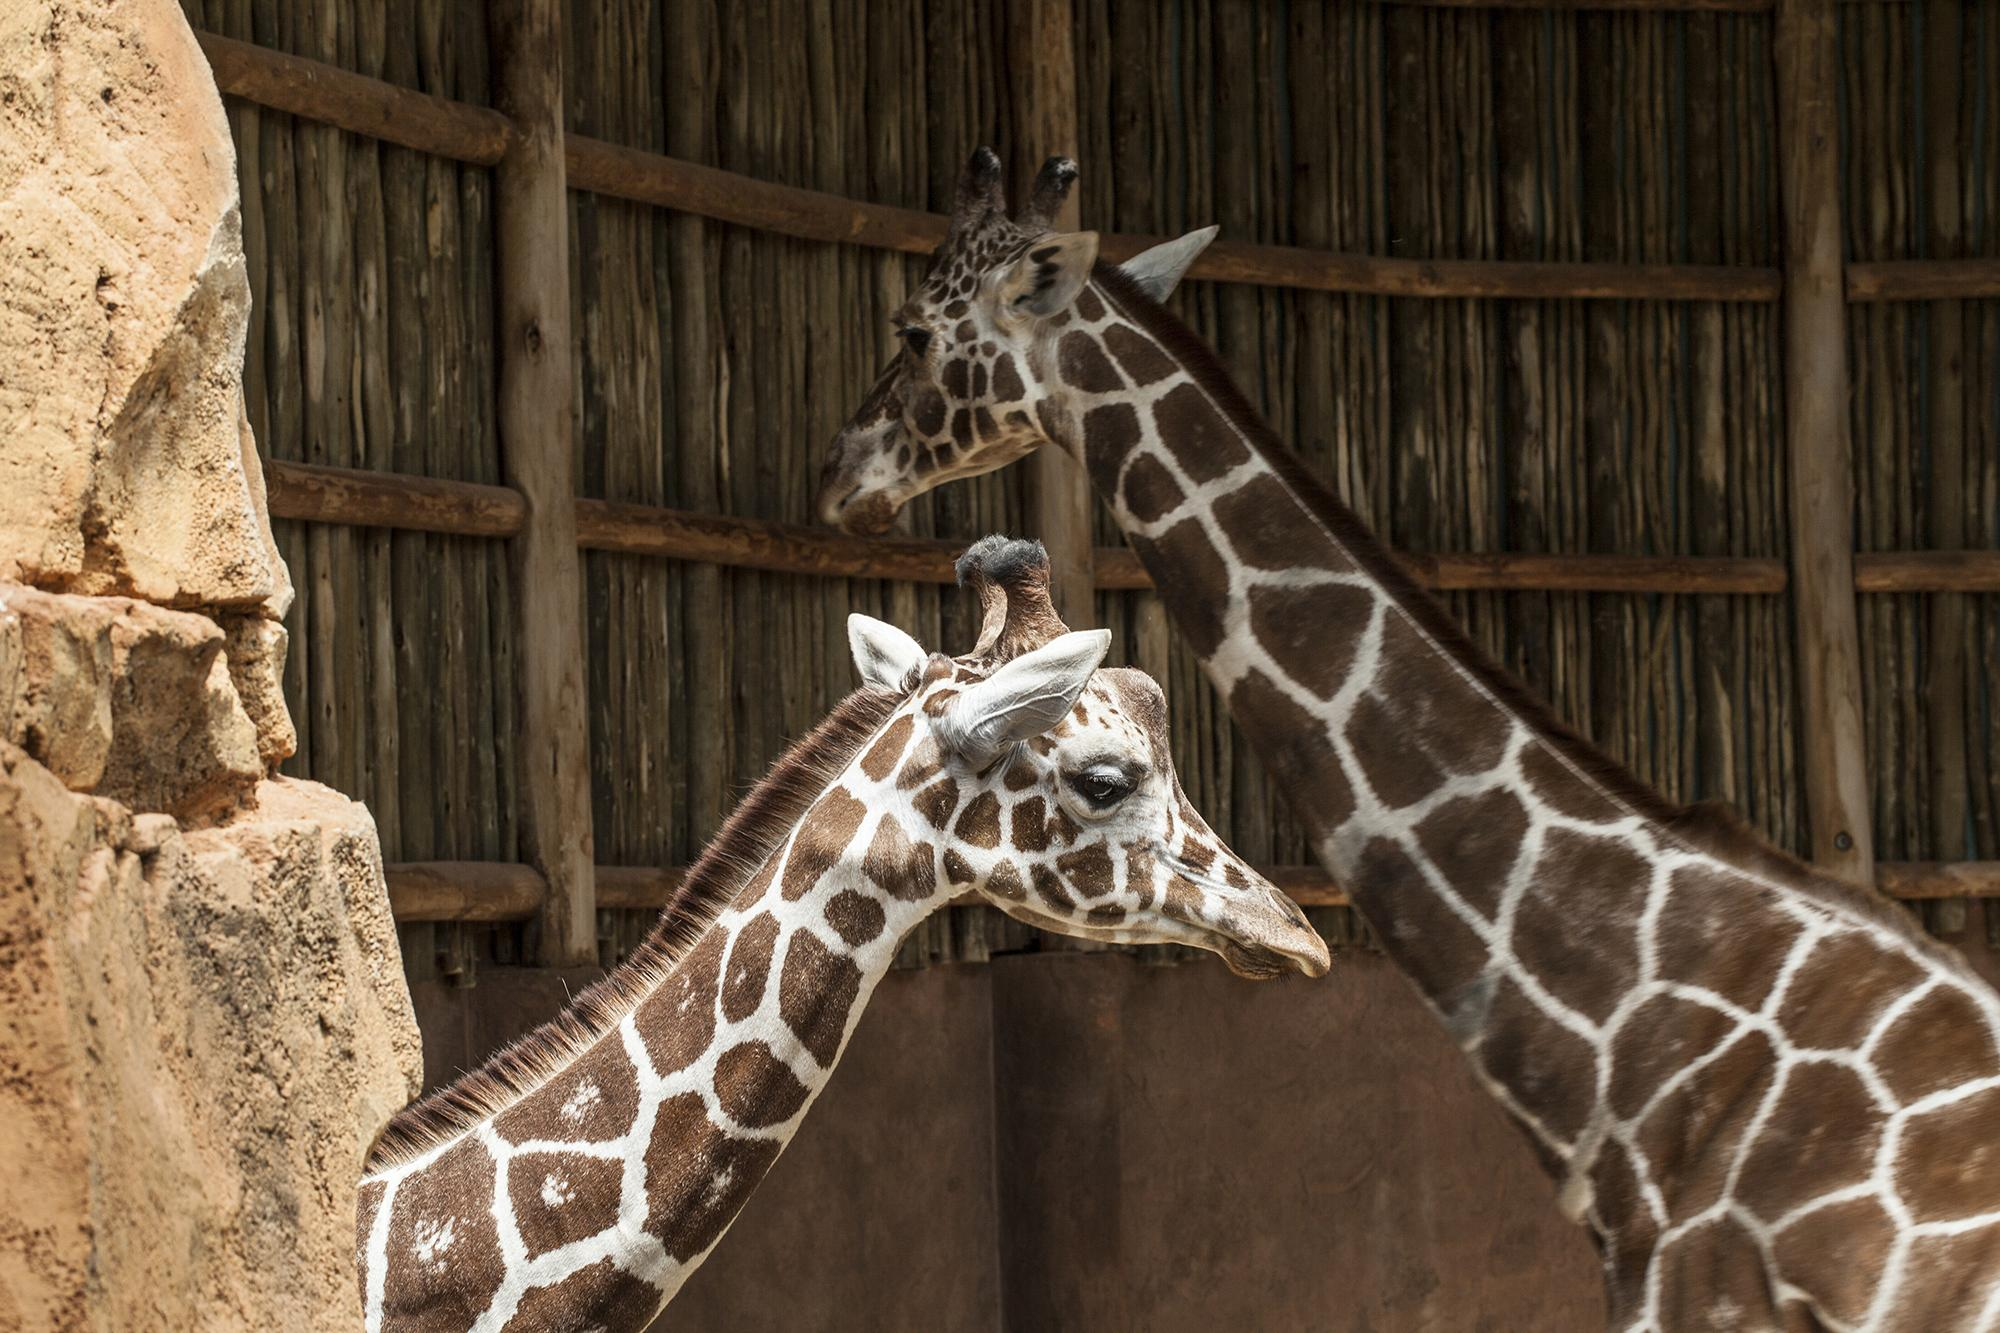 Lincoln Park Zoo's new 2-year-old giraffe, Finely, left, pictured with Etana, an adult giraffe at the zoo. (Chris Bijalba / Lincoln Park Zoo)